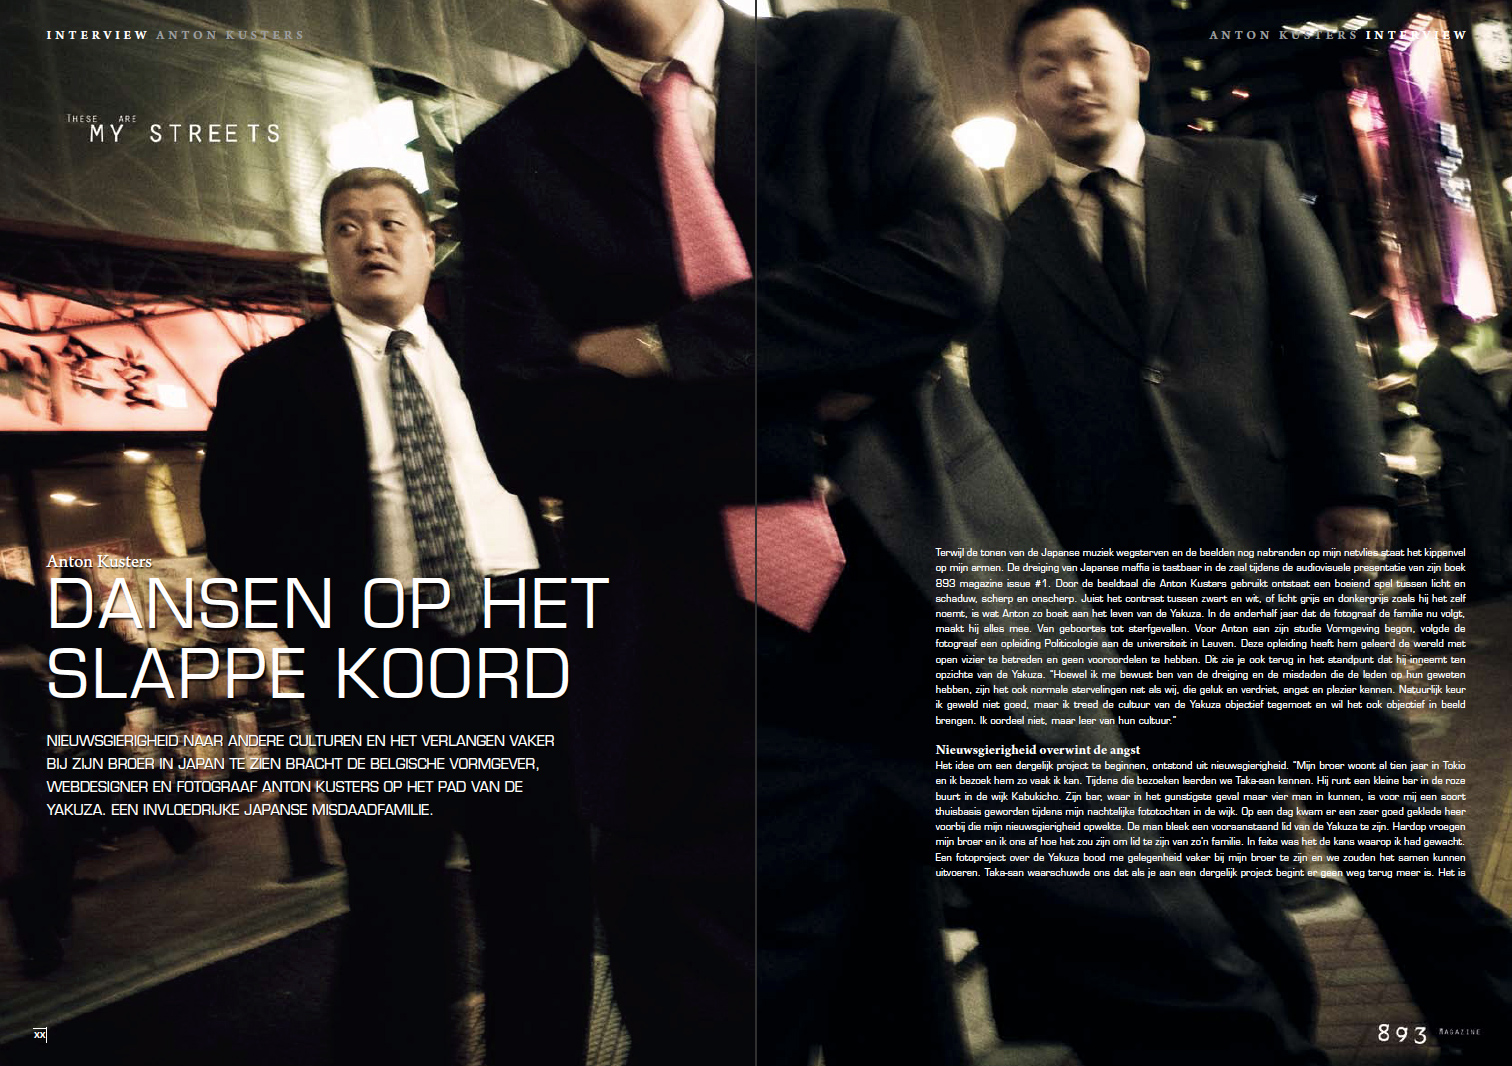 interview_fotografie_01-11_p1-2